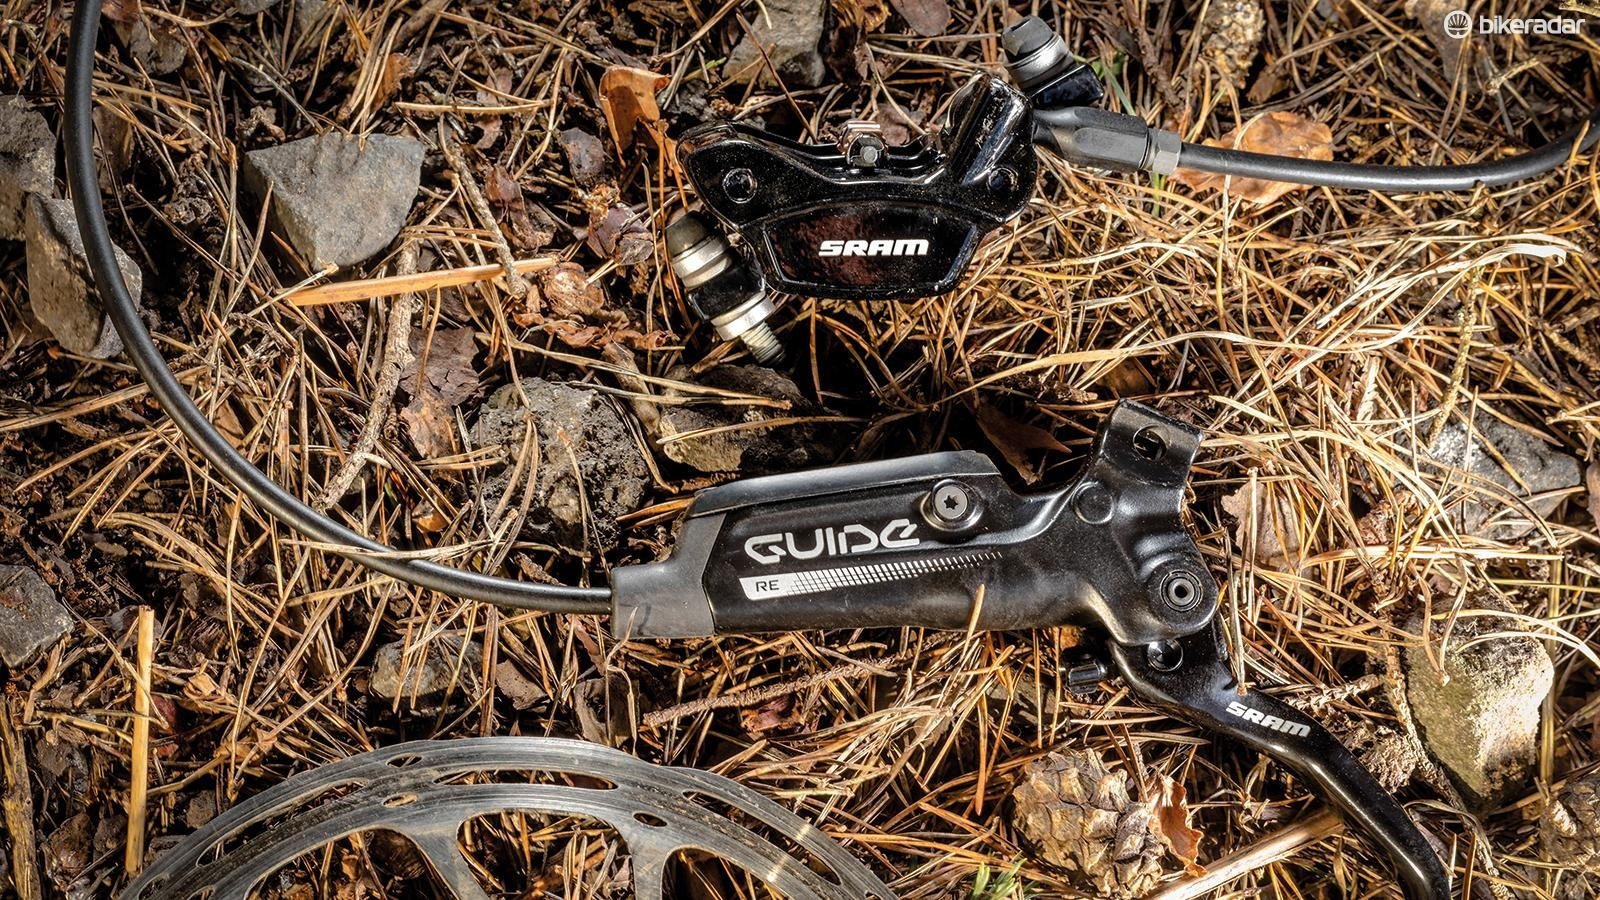 The Guide RE lever fits with all the usual SRAM shifter/Reverb/lockout combo clamps